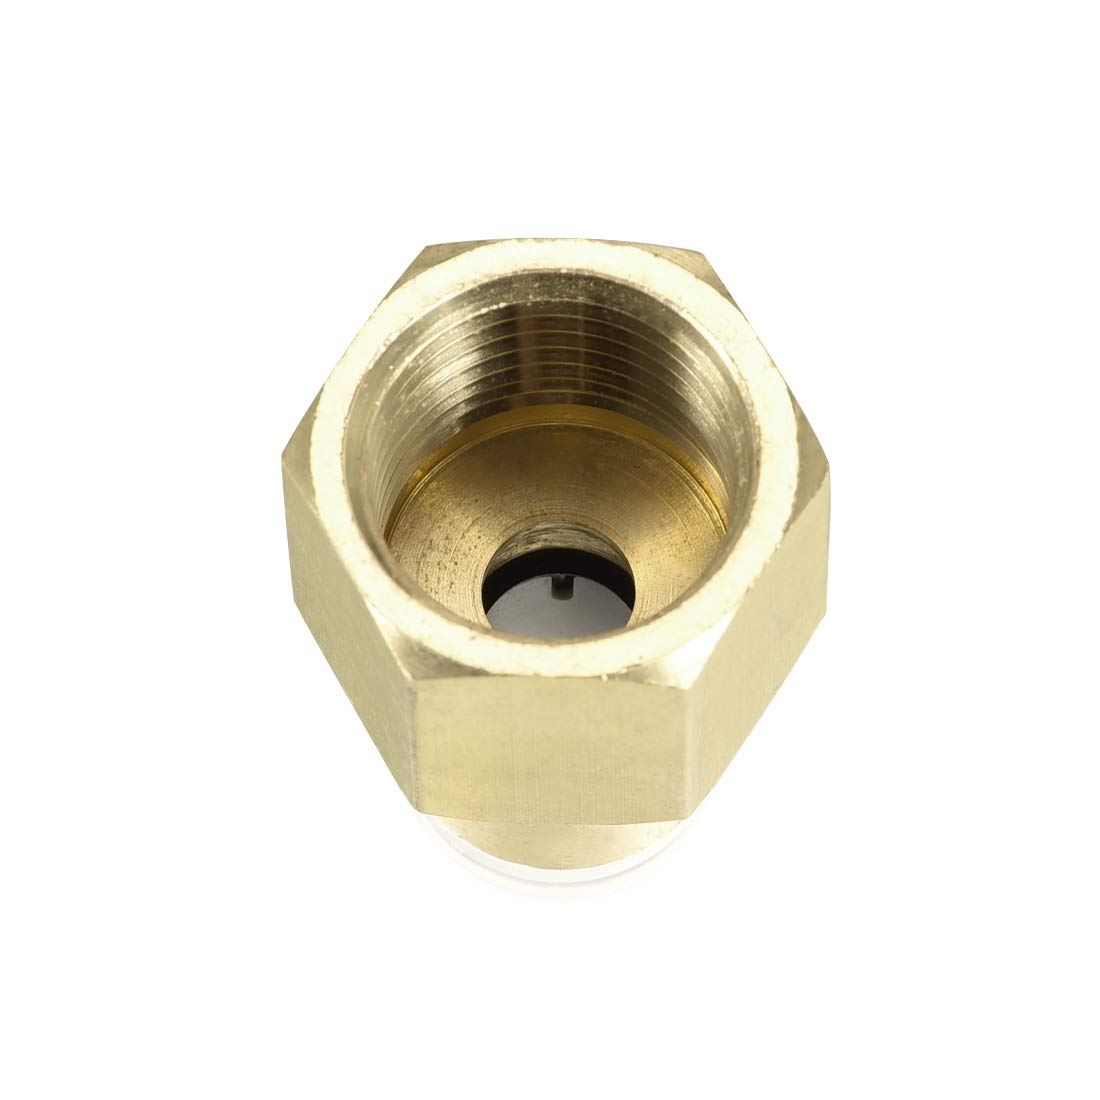 uxcell Push to Connect Tube Fittings 10mm Tube OD x 1//2 PT Female Straight Pneumatic Connecter Pipe Fitting Golden Tone 2Pcs